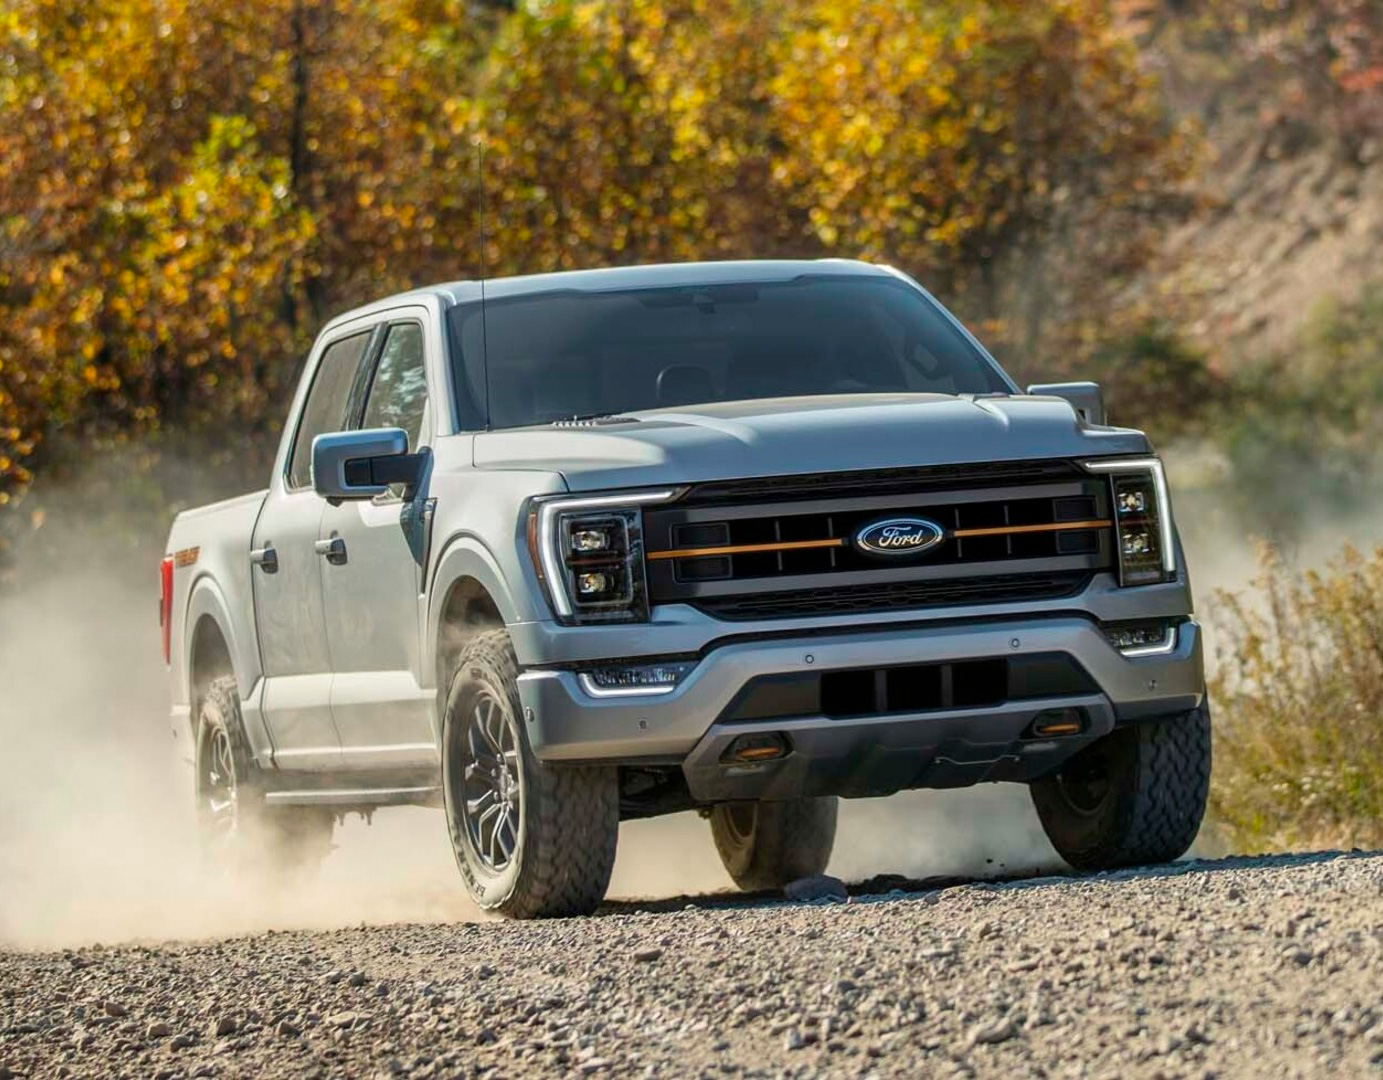 Ford Takes It Off-Road with 2021 F-150 Tremor at werd.com